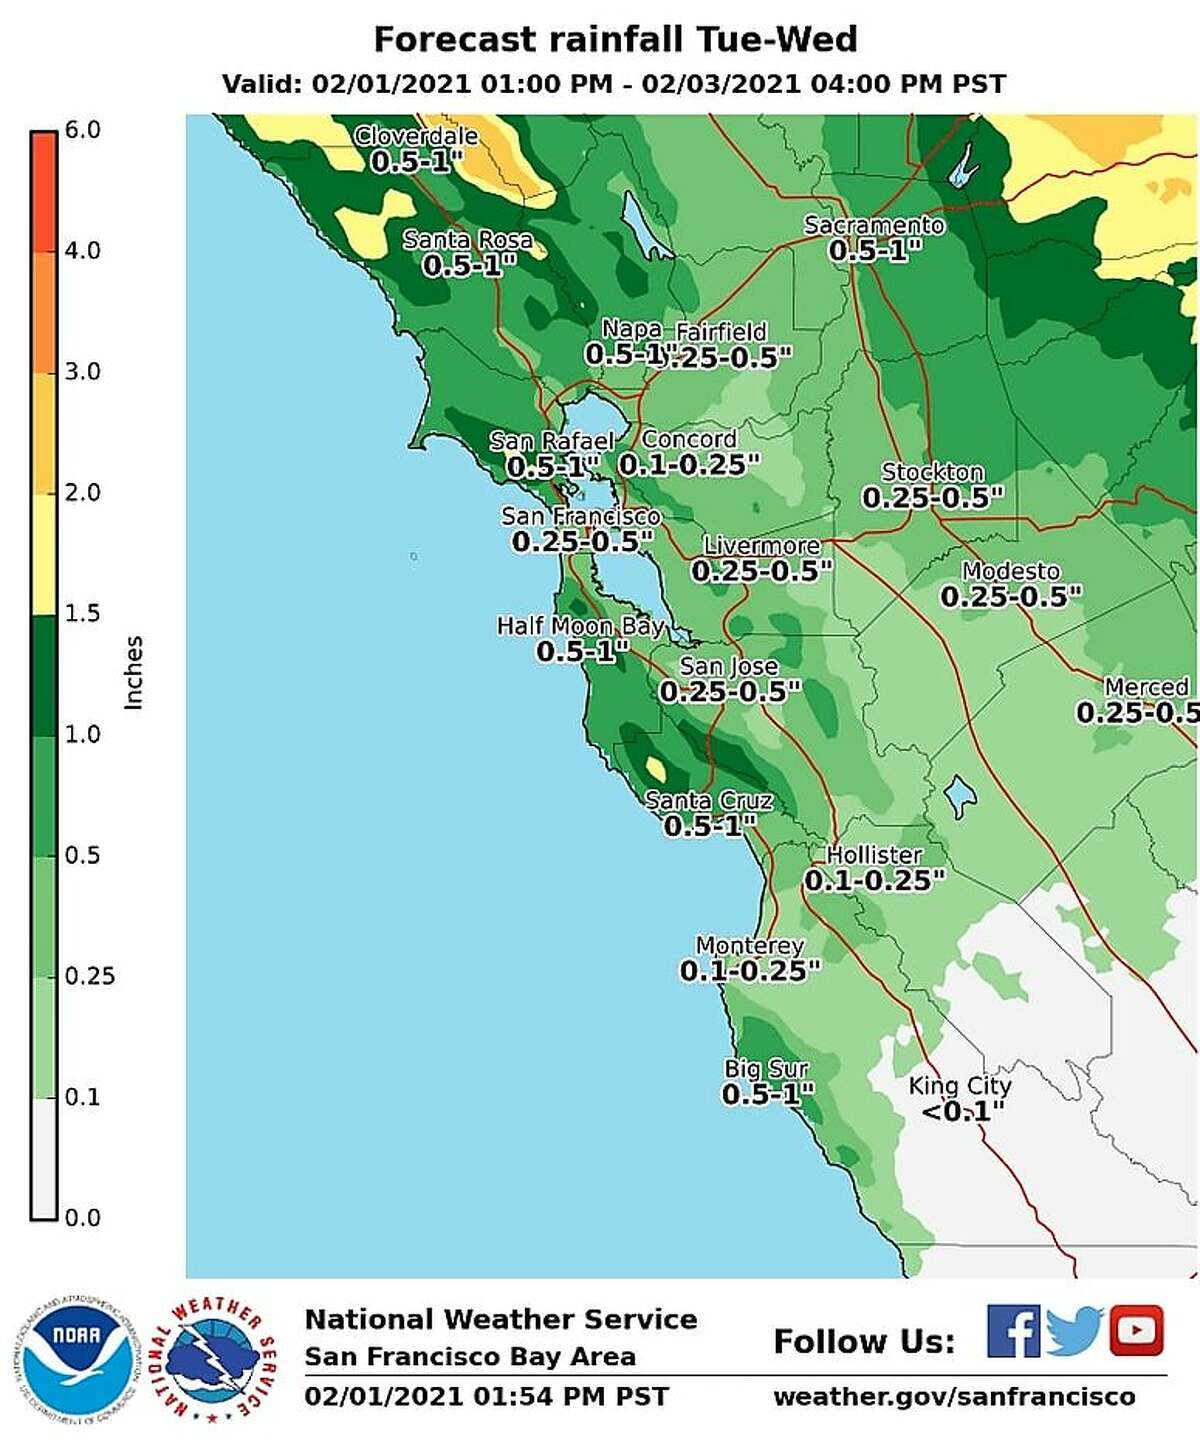 Forecasted rainfall totals from Monday, Feb. 1 through Wednesday, Feb. 3.